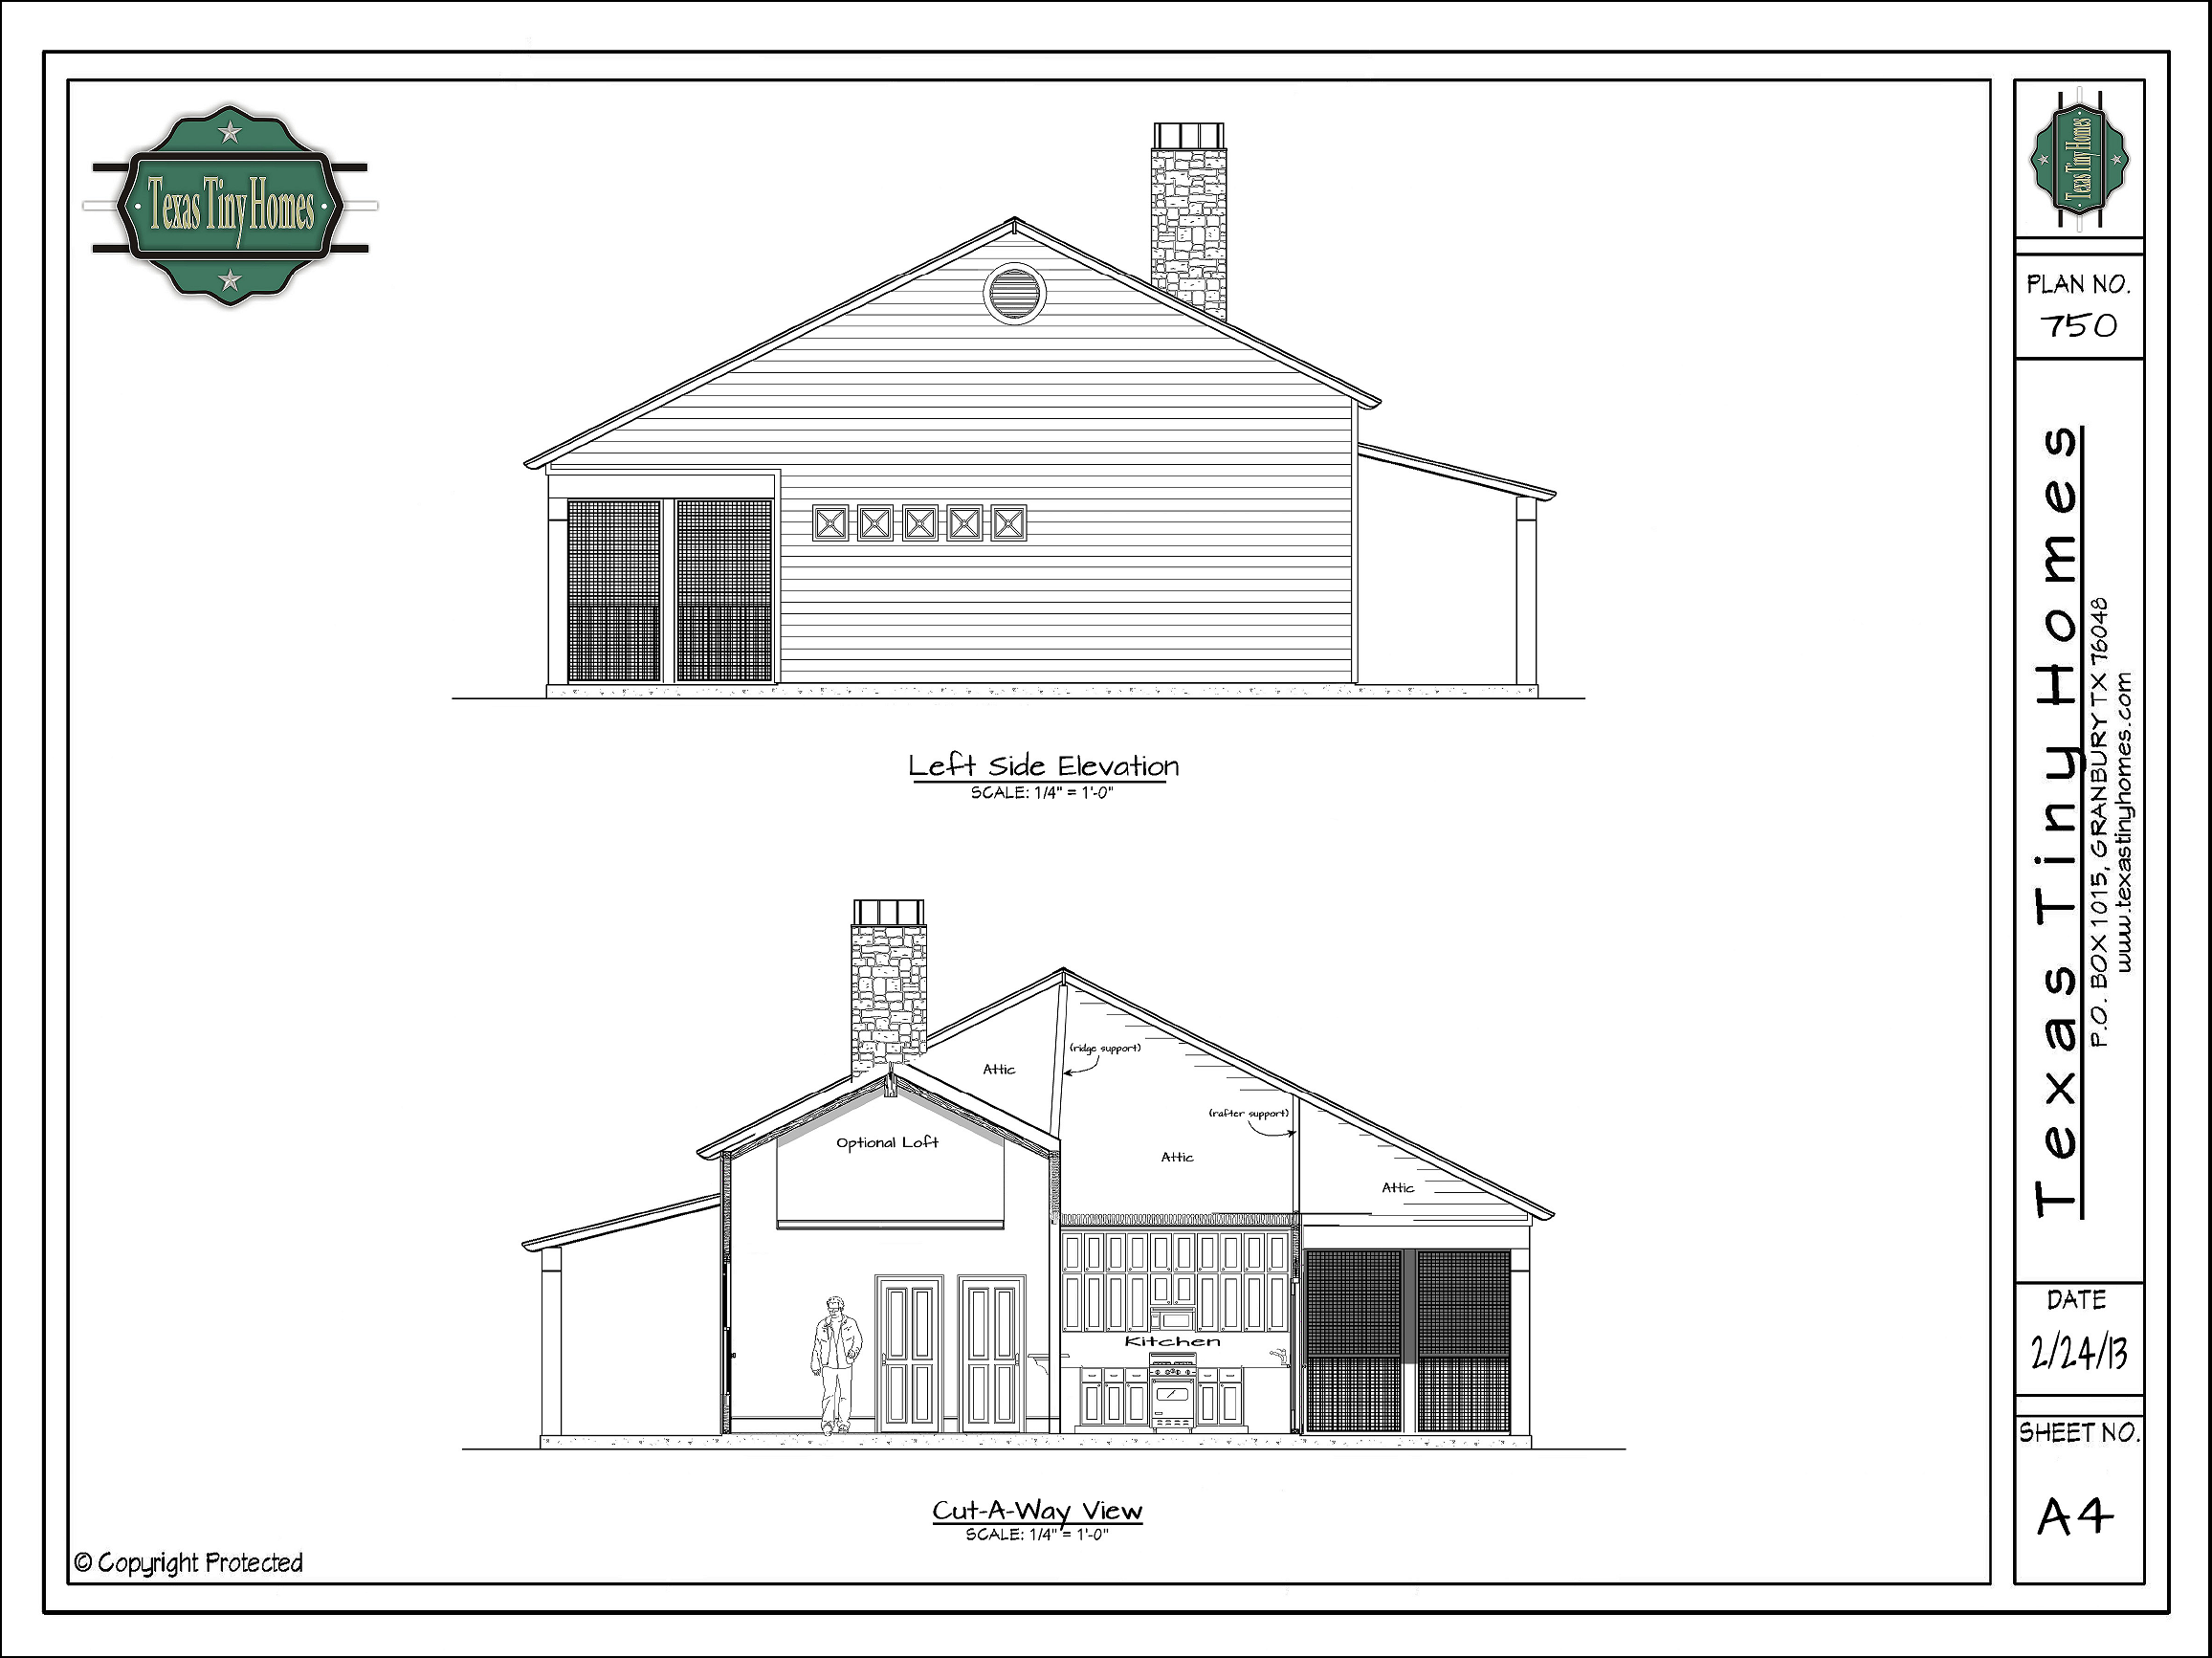 Texas tiny homes plan 750 for House and home plans